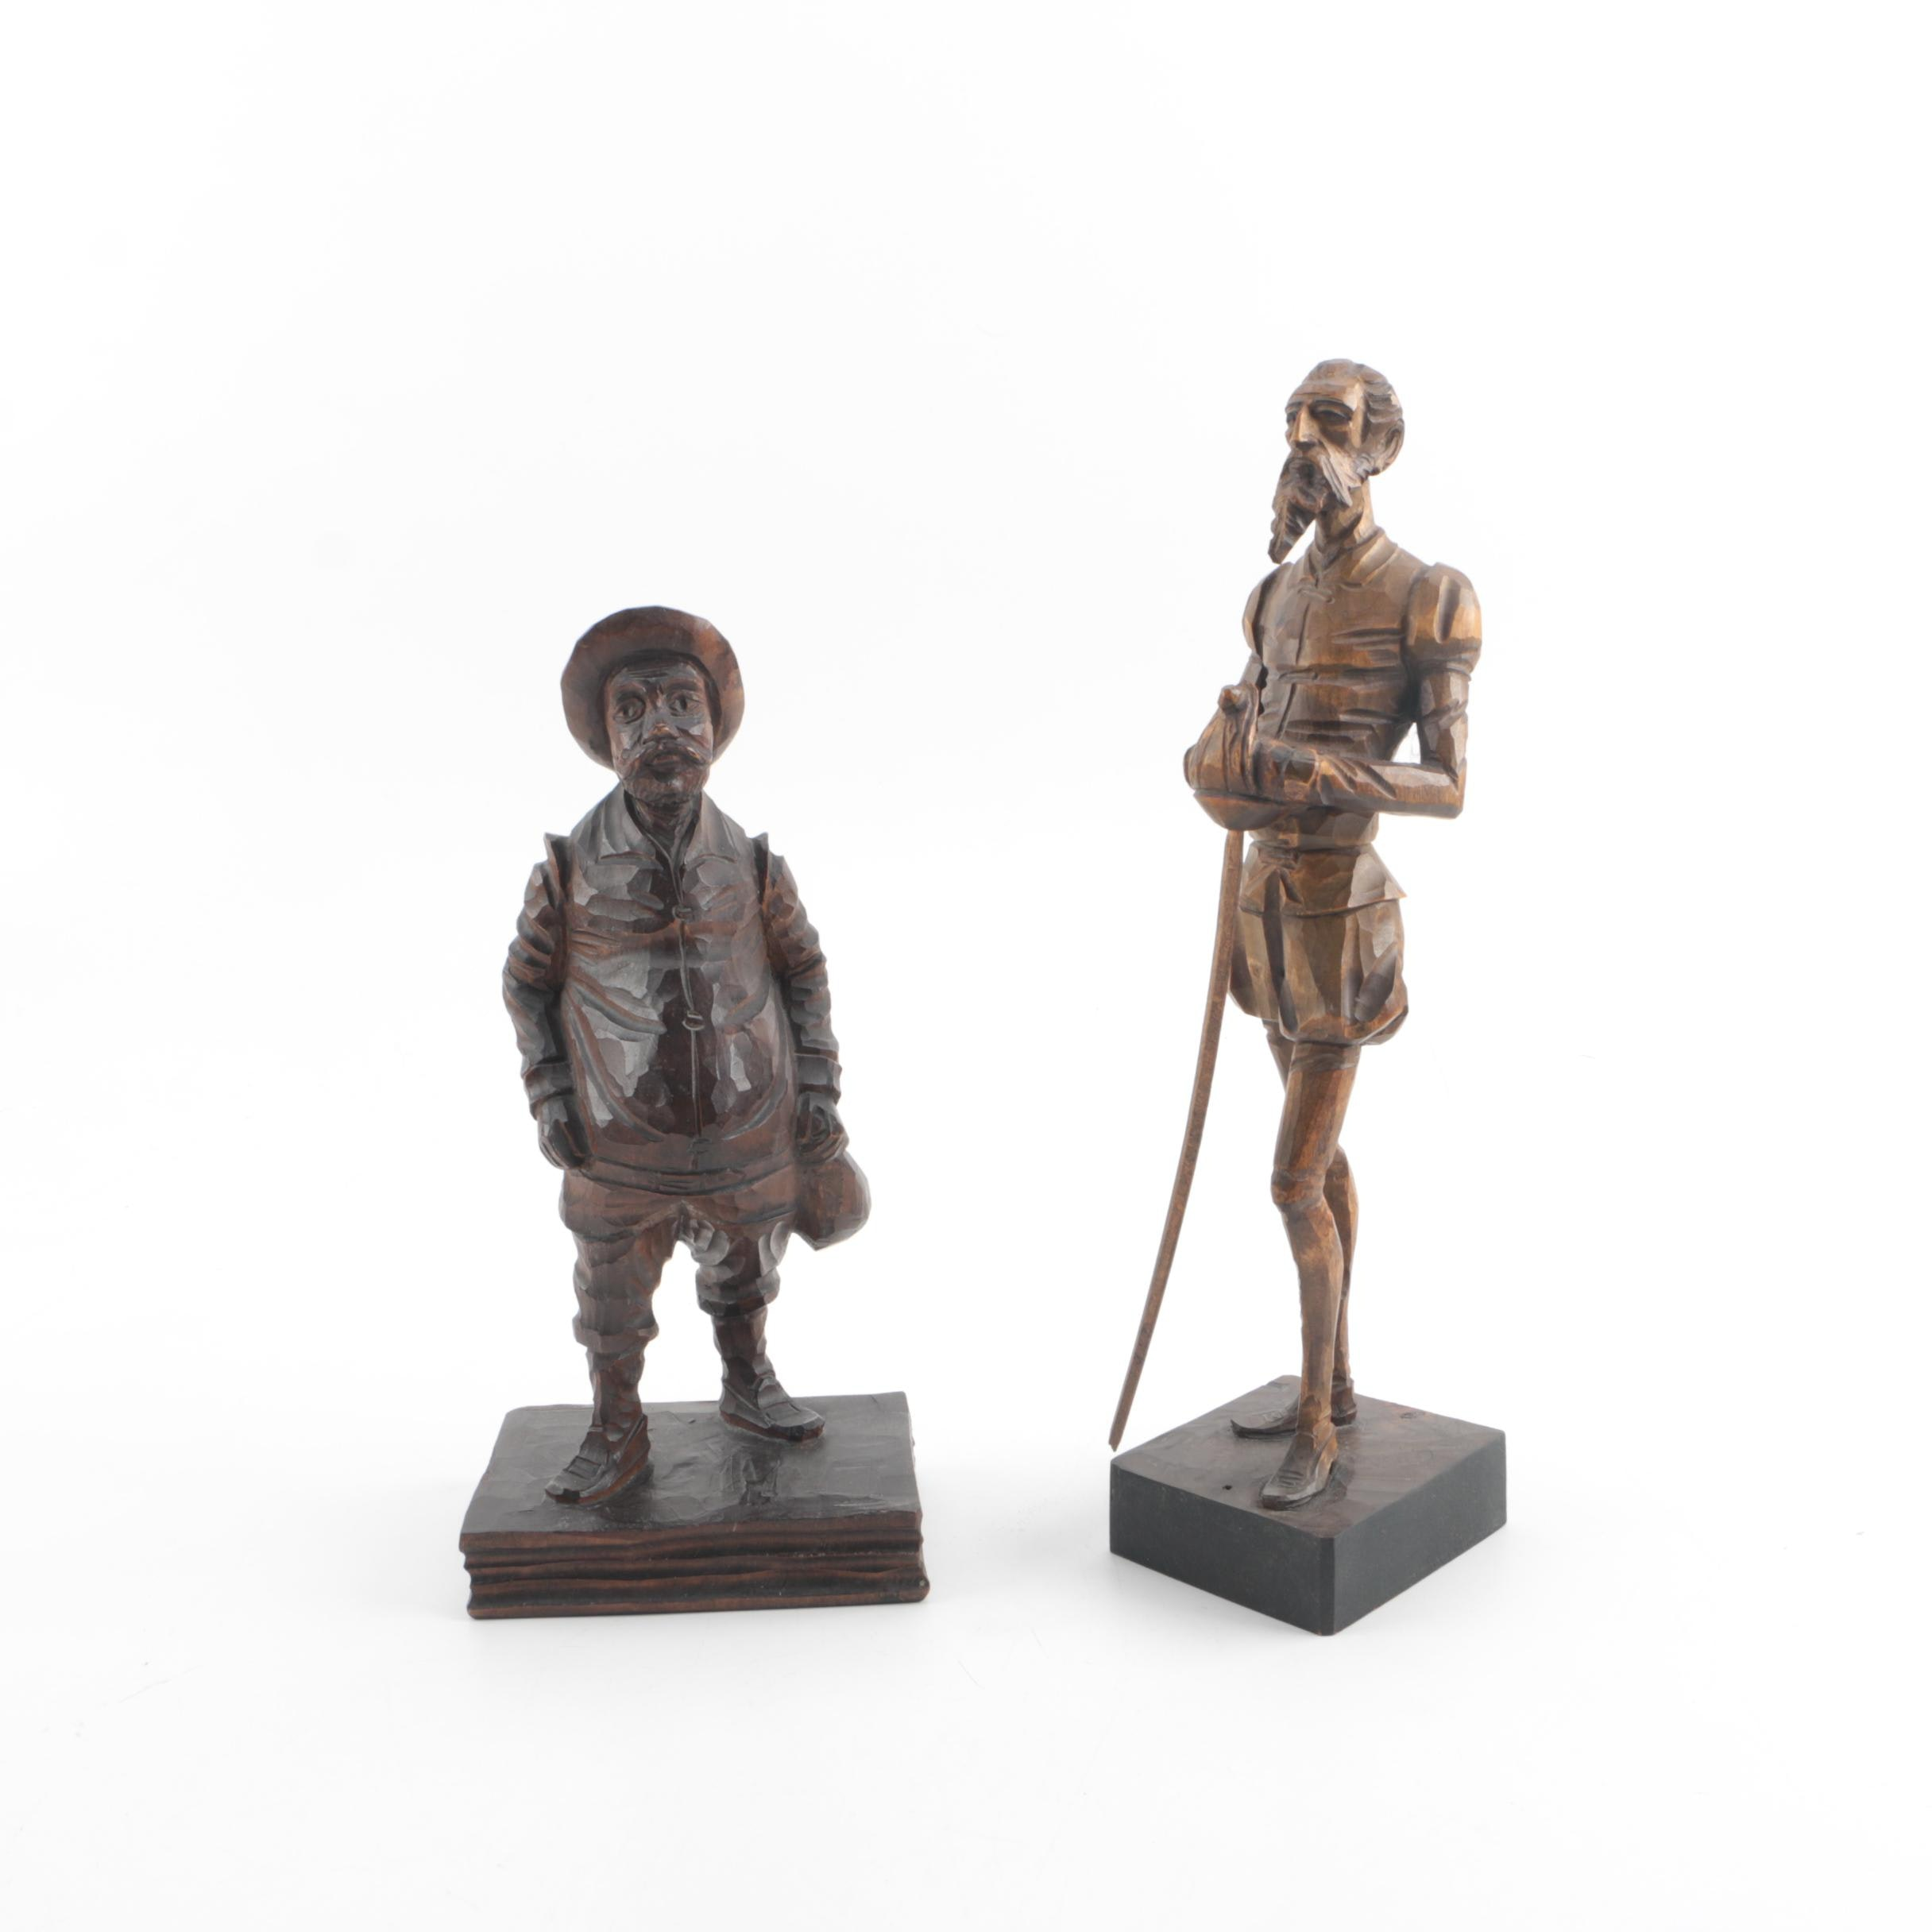 Carved Wood Sculptures of Don Quixote and Sancho Panza